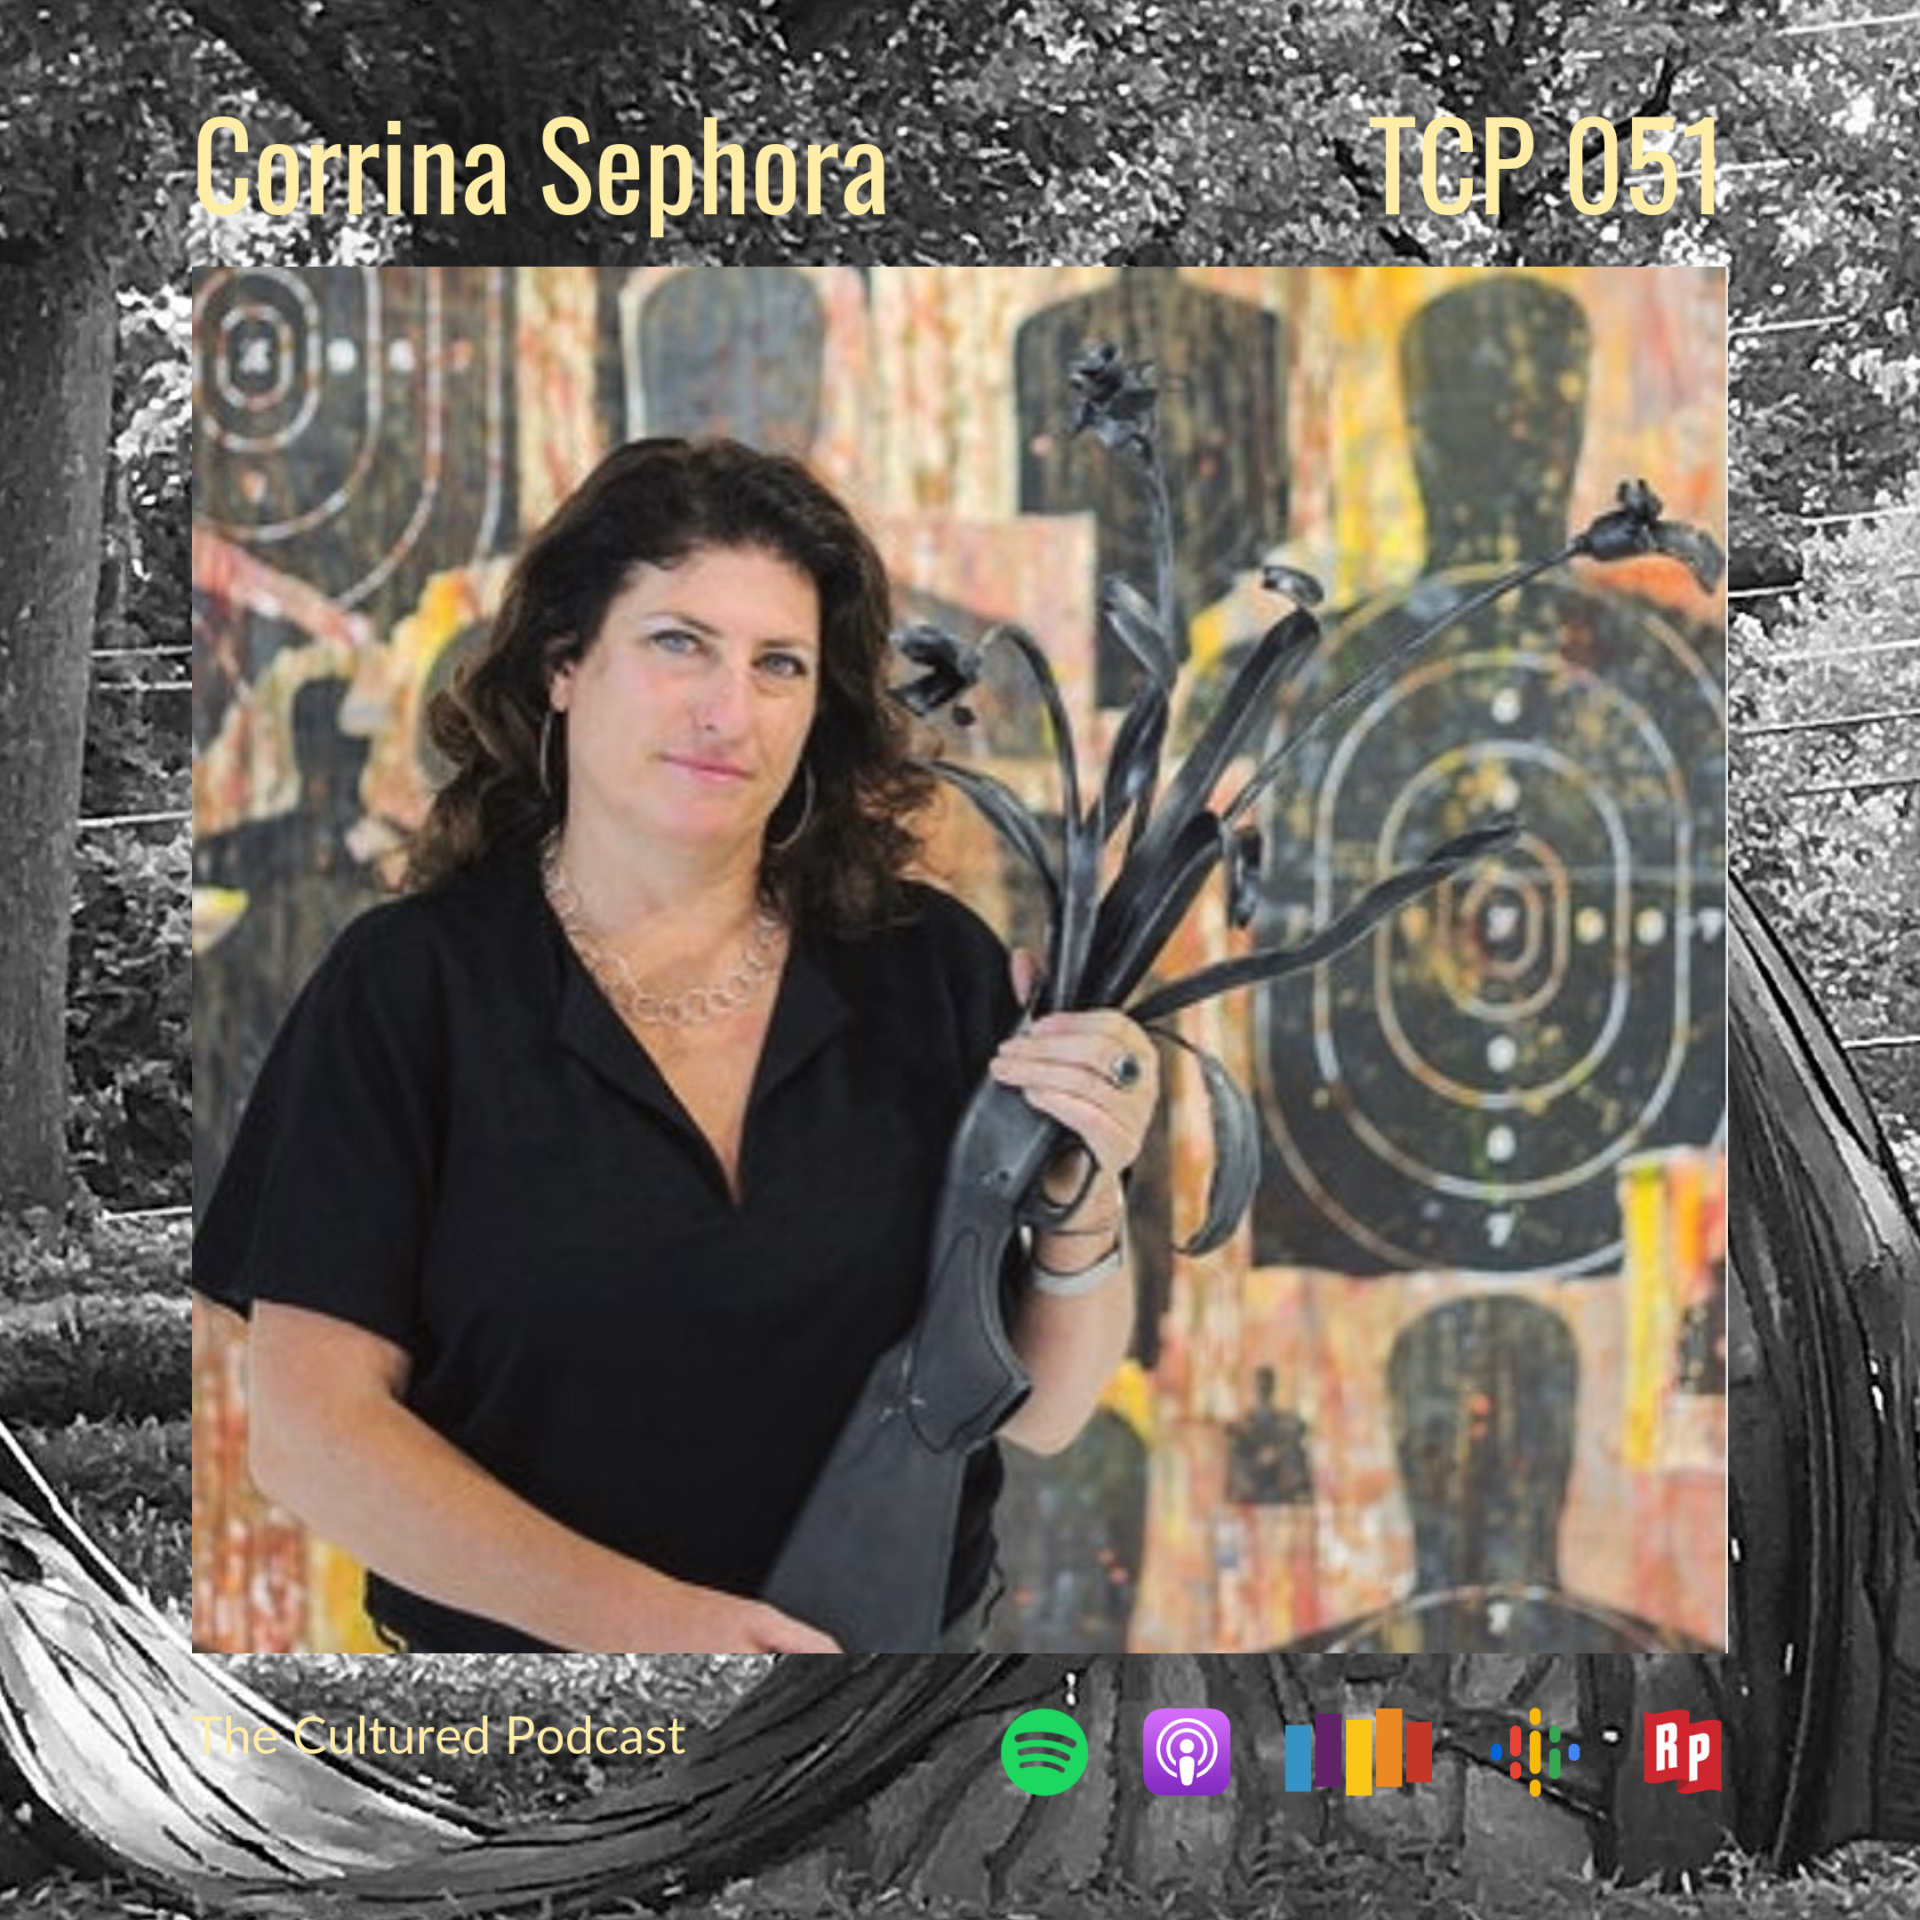 Listen to this episode of The Cultured Podcast as Corrina connects the dots from a childhood living off the land with her father to a thriving career in art.